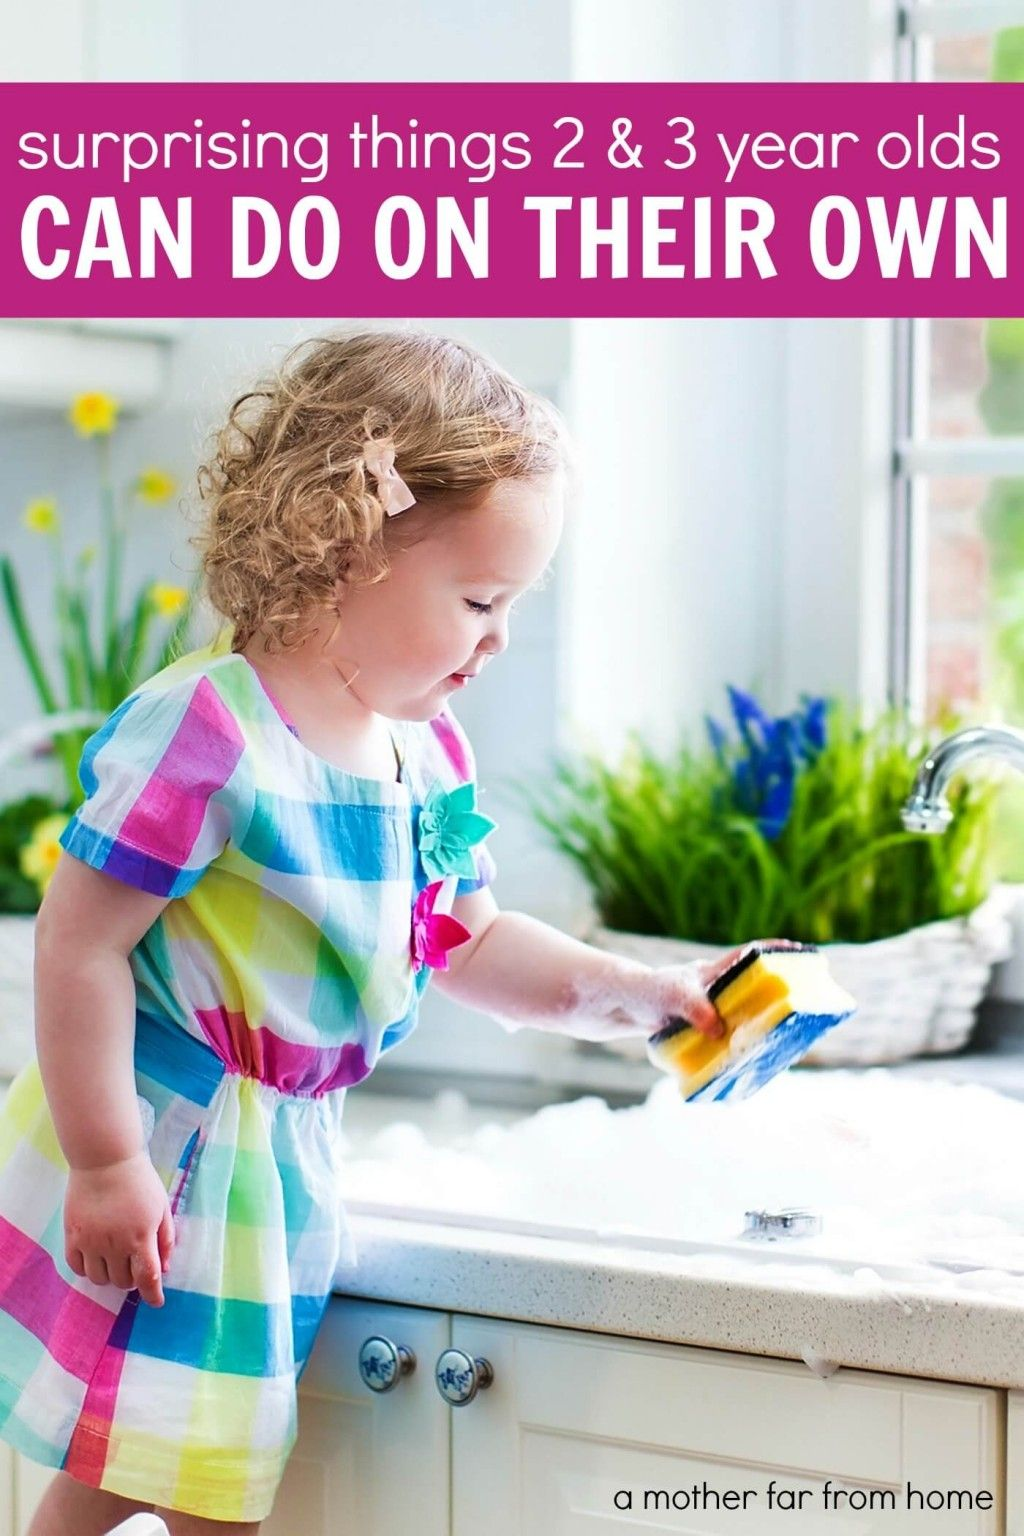 661b9f3d0 Here are some surprising things (or maybe not terribly surprising) 2 and 3  year olds can actually do on their own or with minimal assistance.